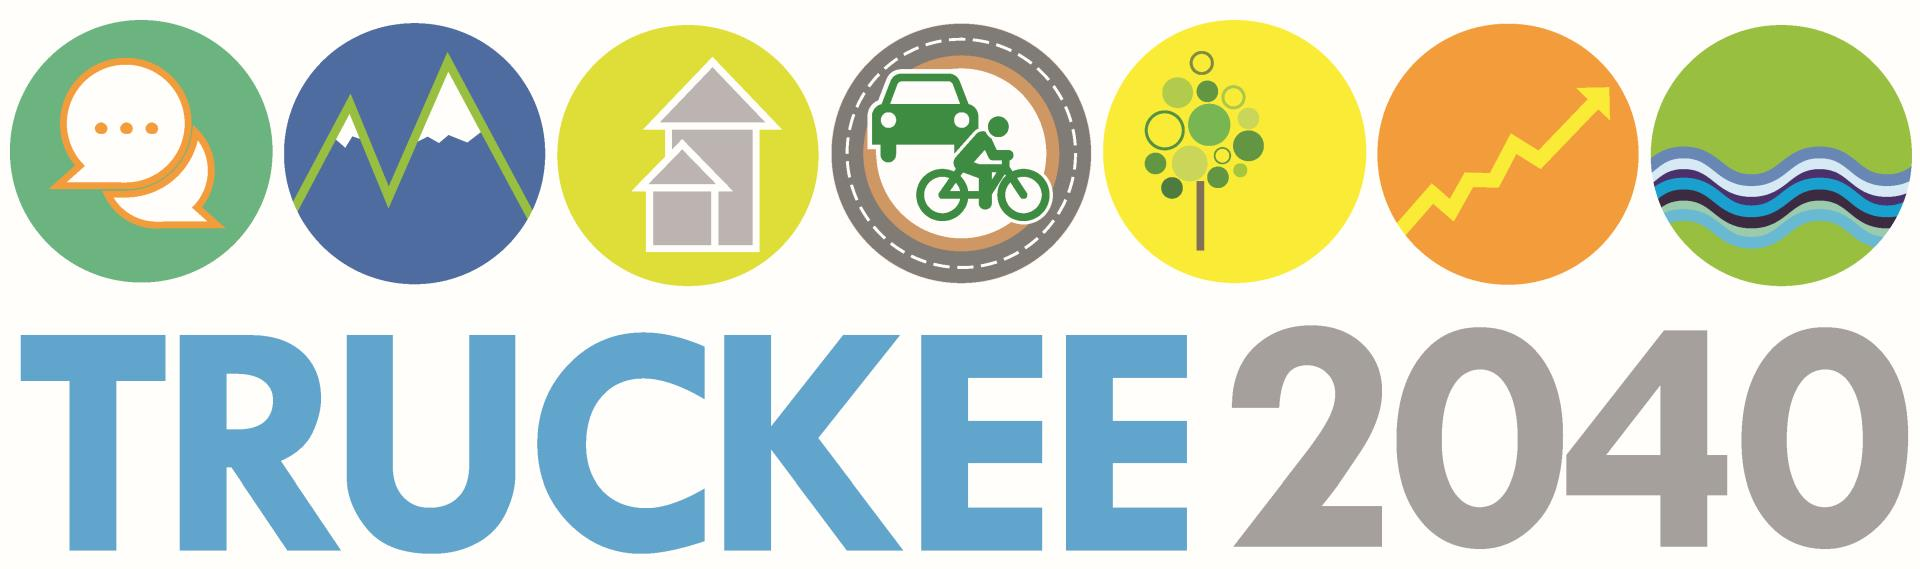 Logo Image - General Plan for the Town of Truckee